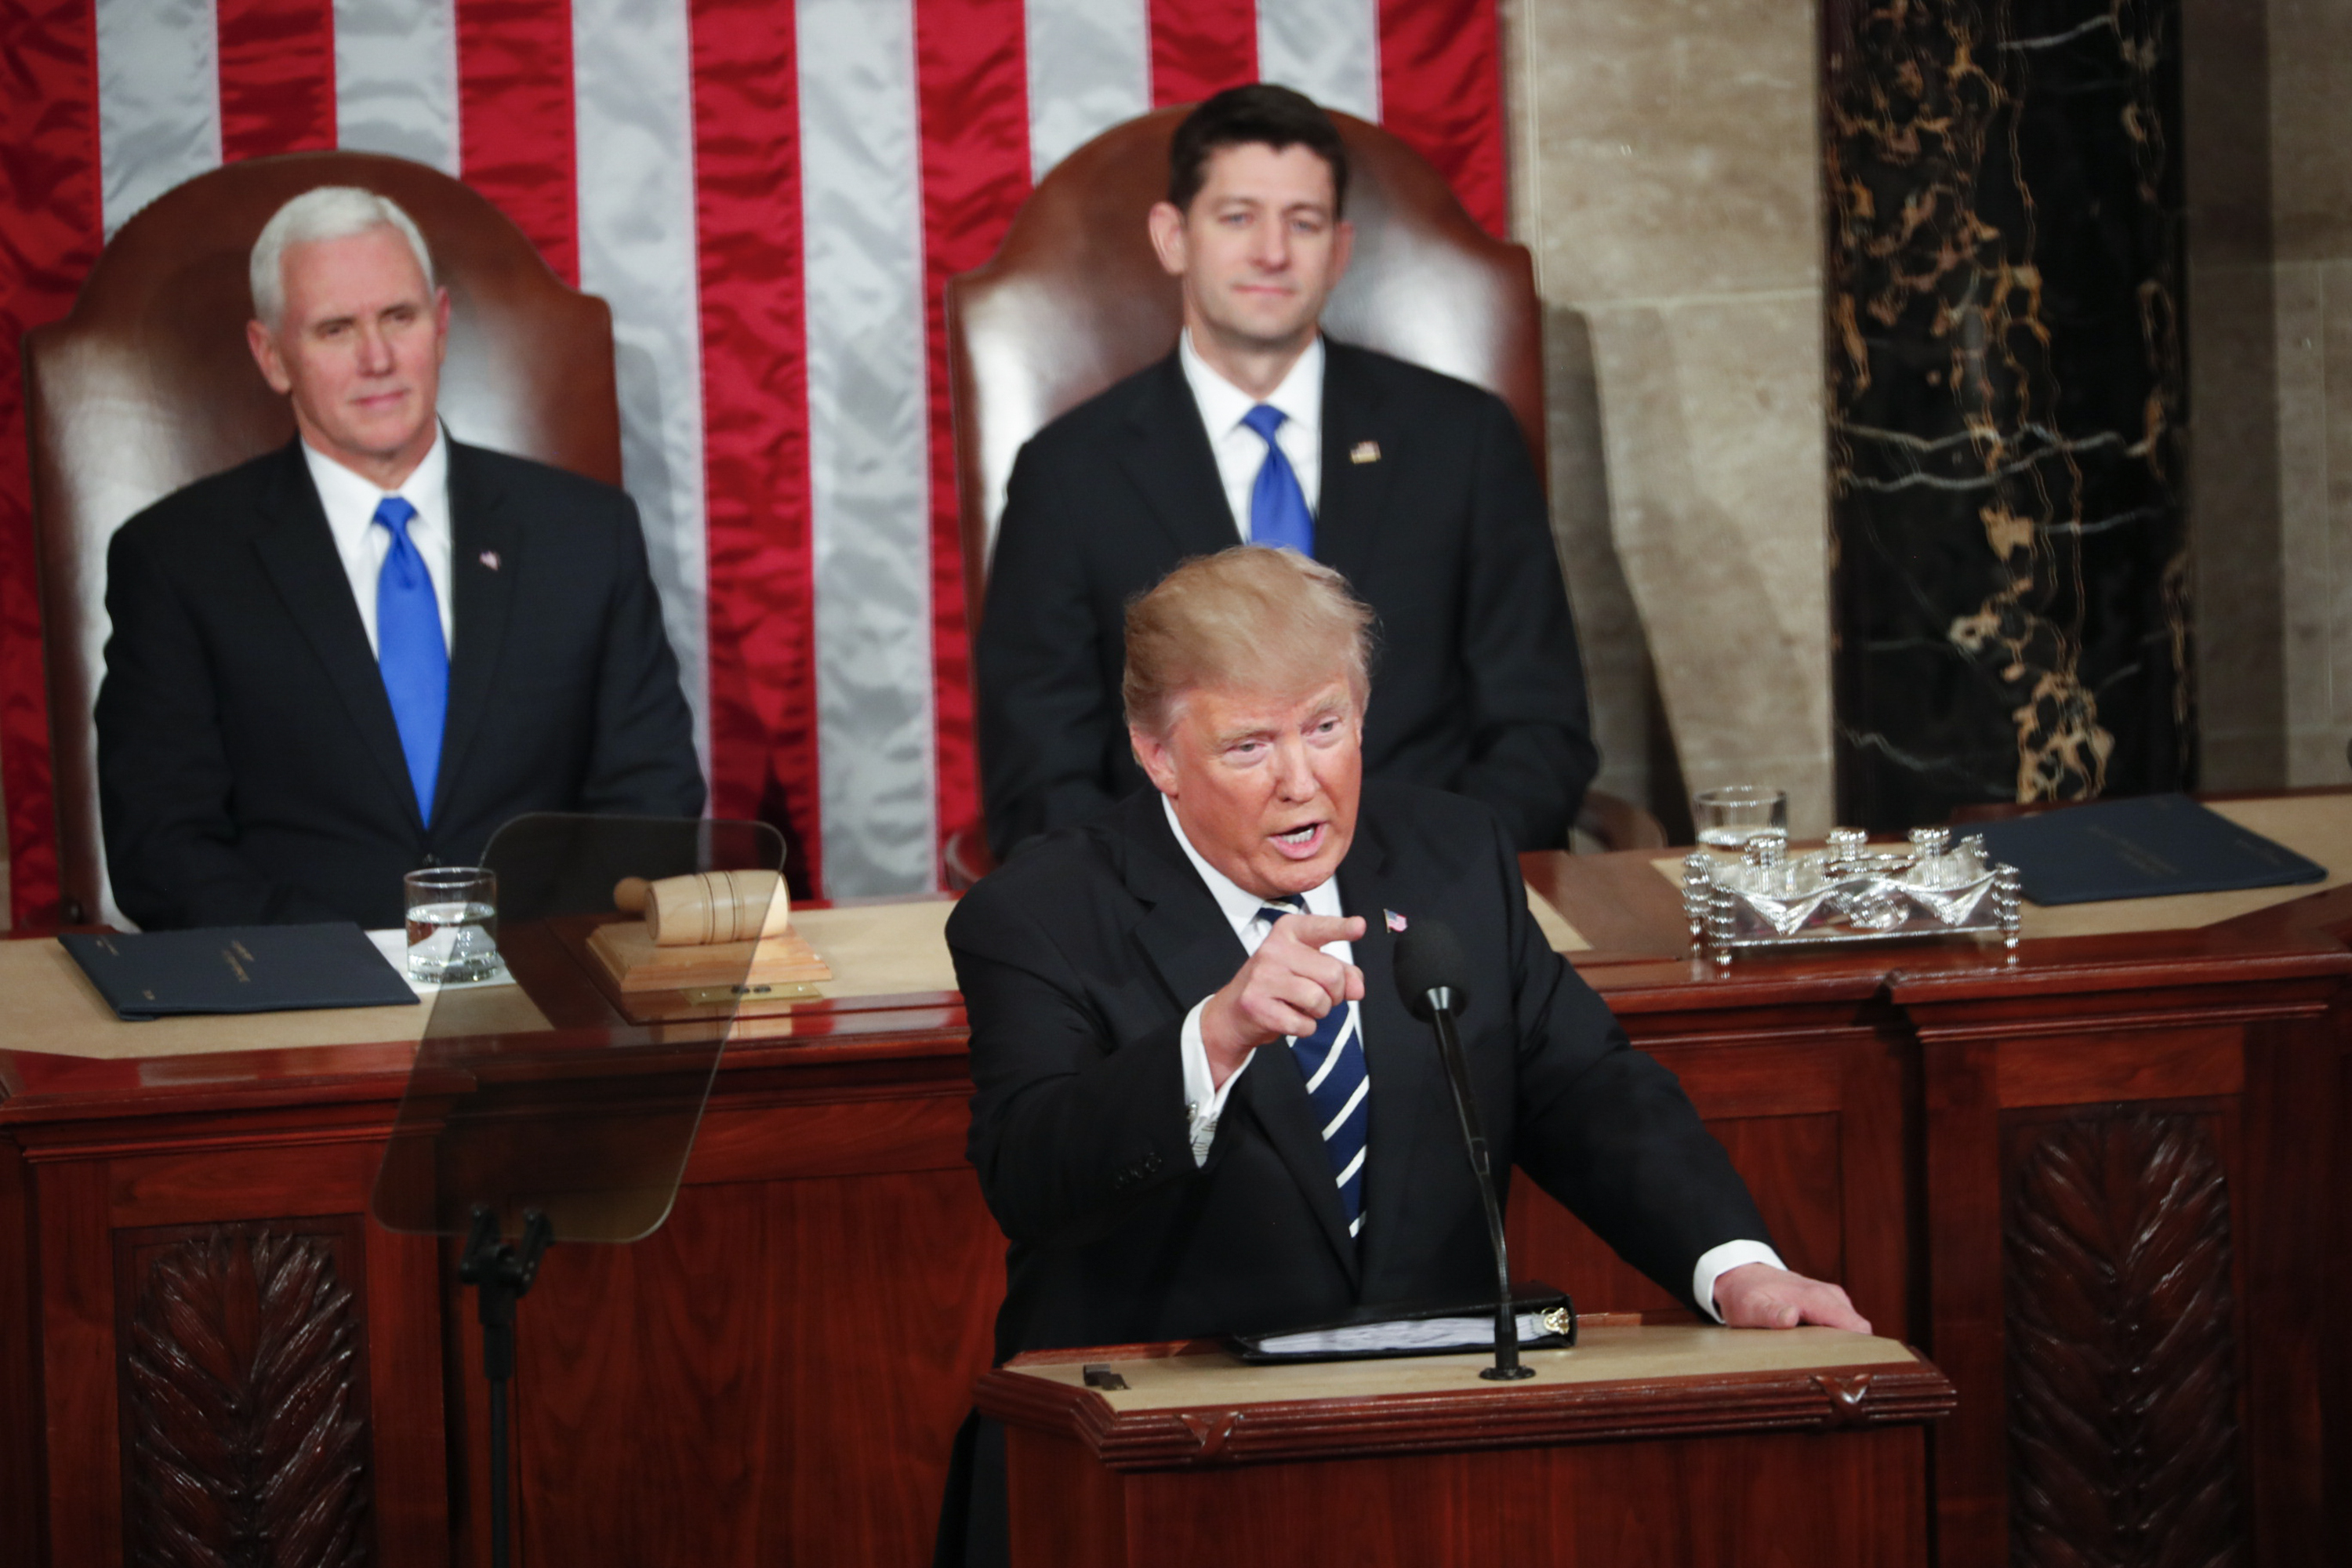 President Donald Trump, backed by Vice President Mike Pence and House Speaker Paul Ryan (R-Wis.), speaks to a joint session of Congress at the Capitol in Washington, Feb. 28, 2017. (New York Times)